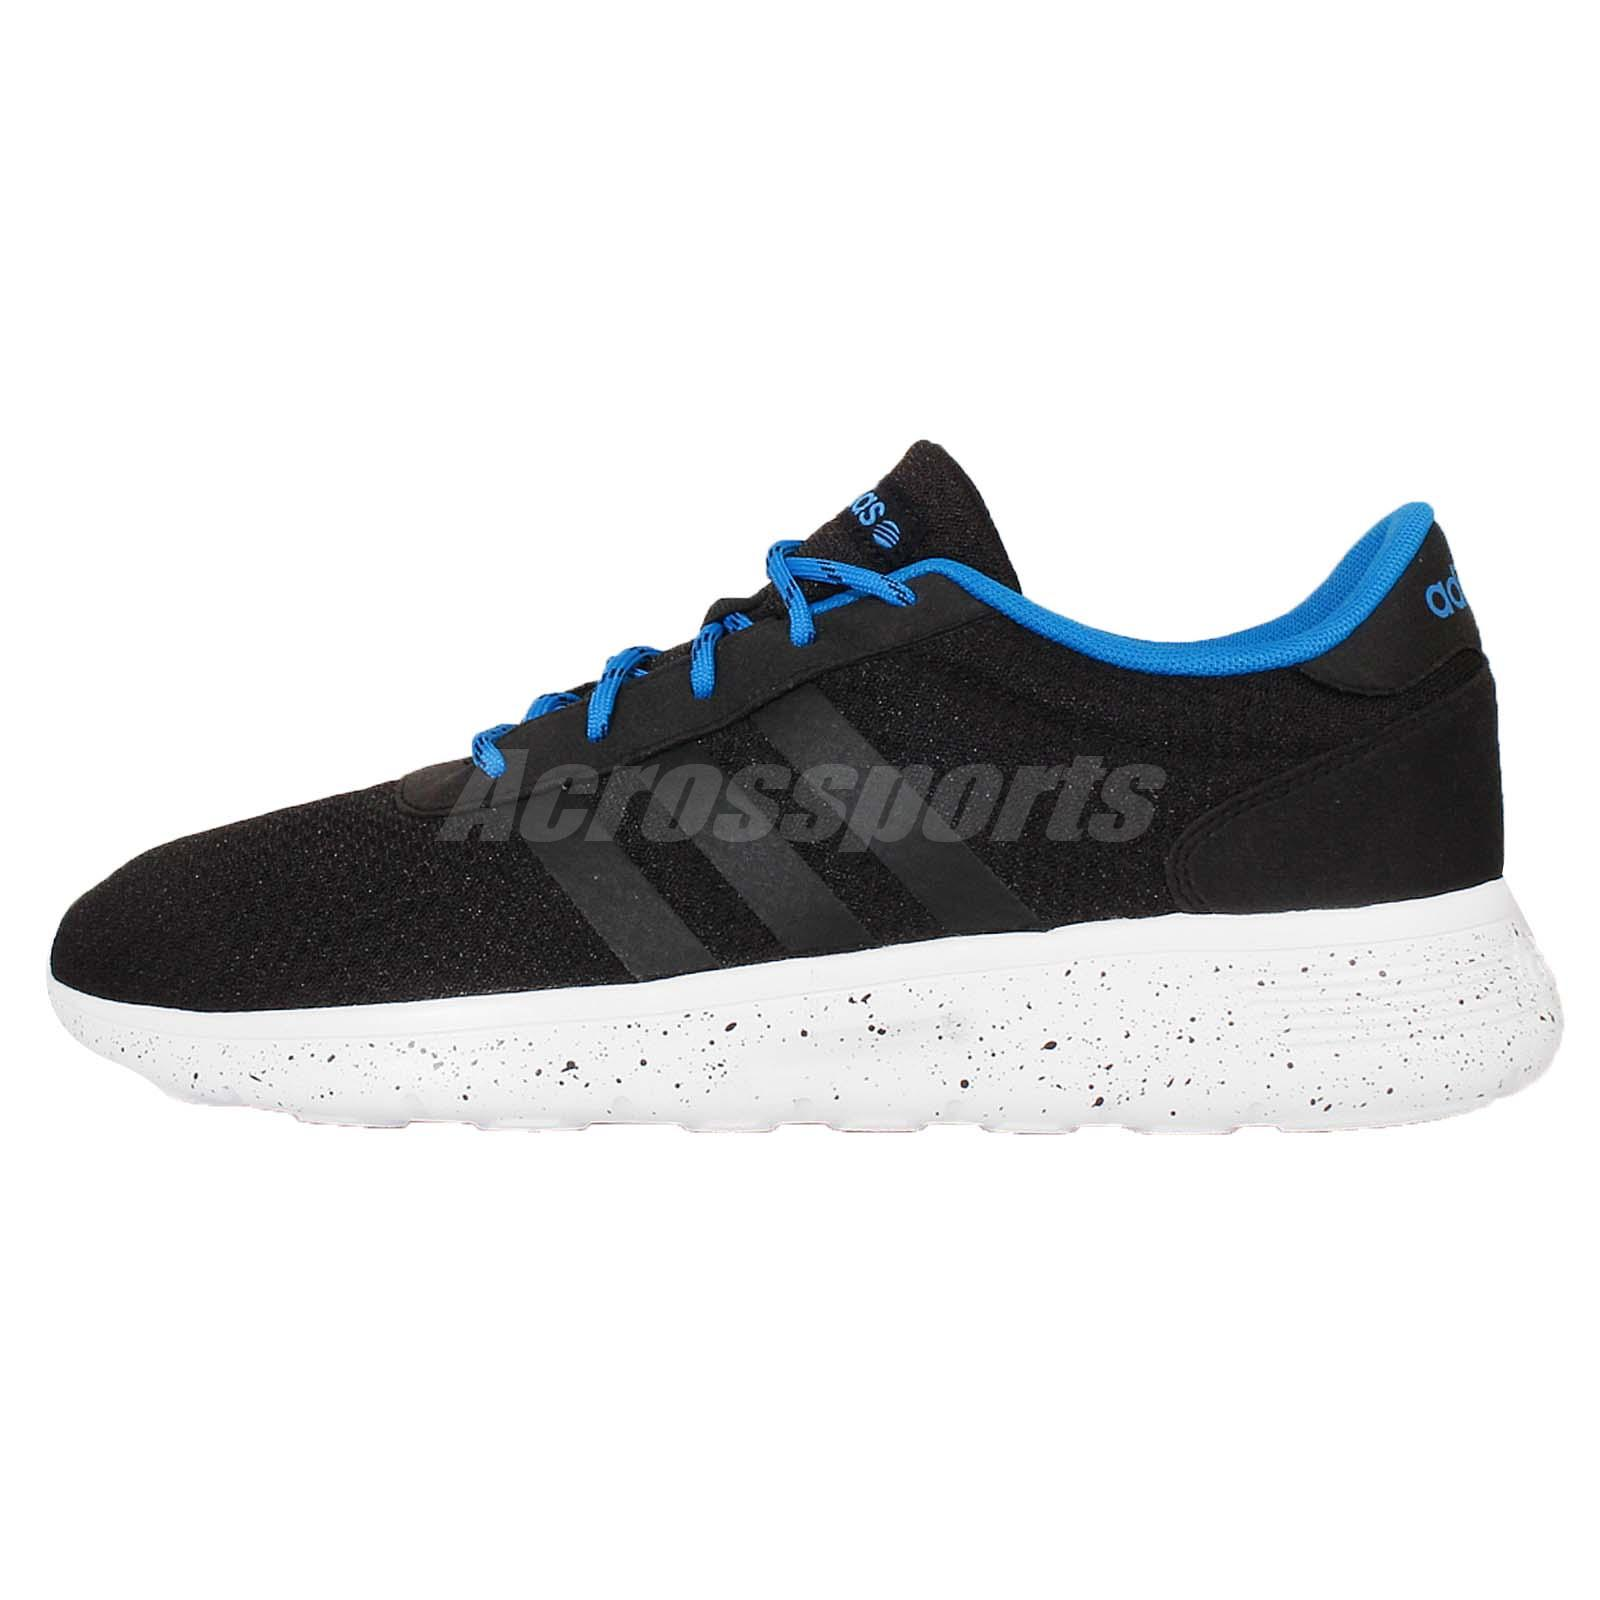 adidas neo label lite racer mens running shoes lightweight. Black Bedroom Furniture Sets. Home Design Ideas